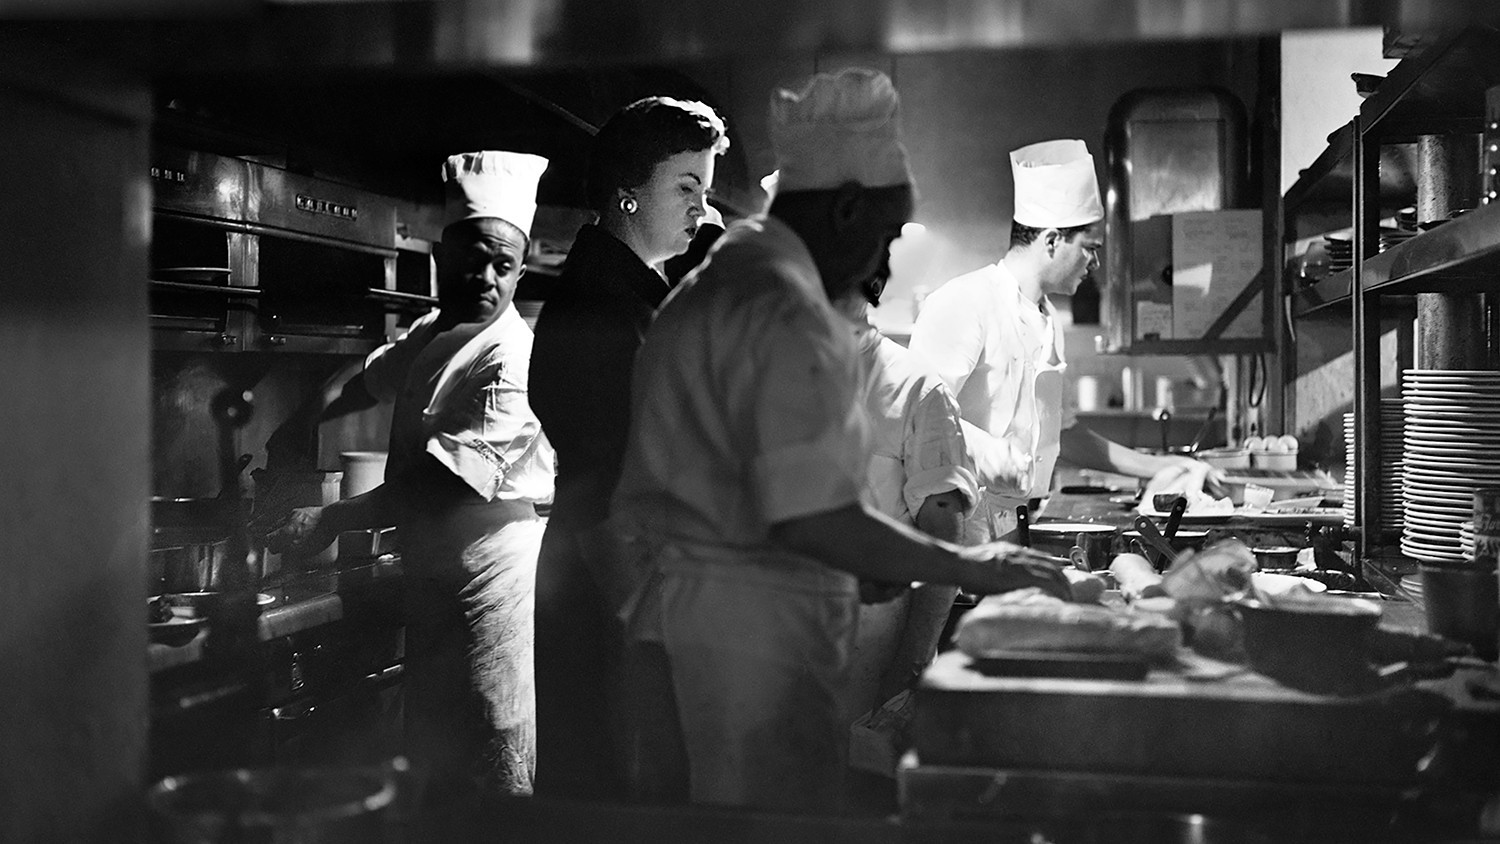 Restaurateur Ella Brennan Finally Gets the Documentary She Deserves